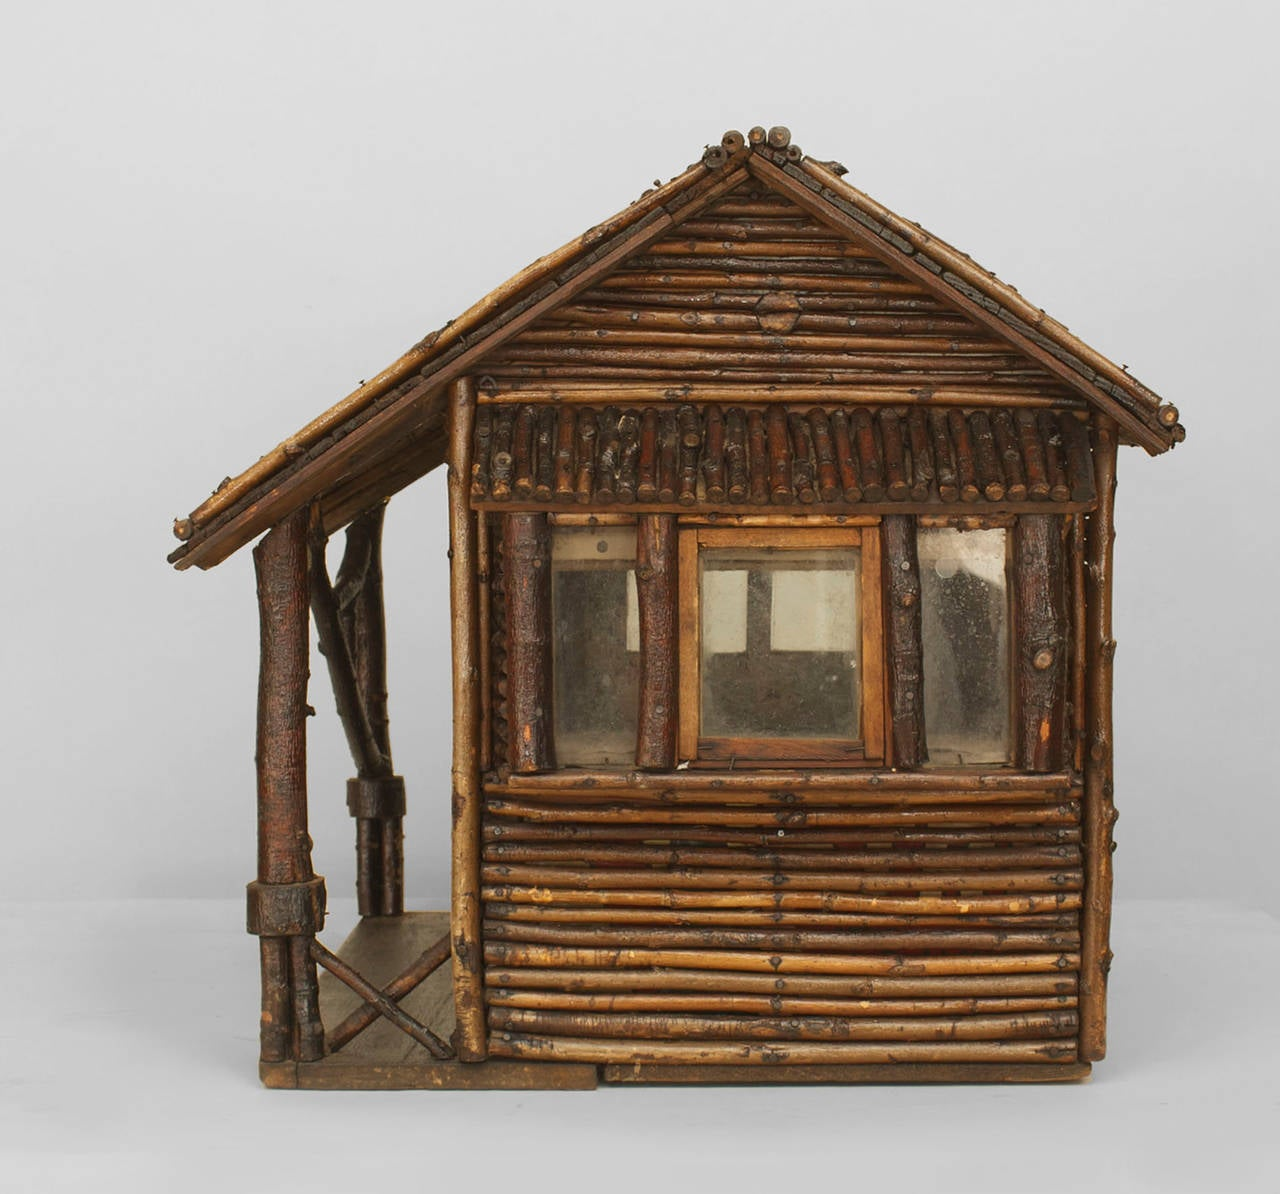 Early 20th C American Rustic Miniature Log Cabin For Sale At 1stdibs